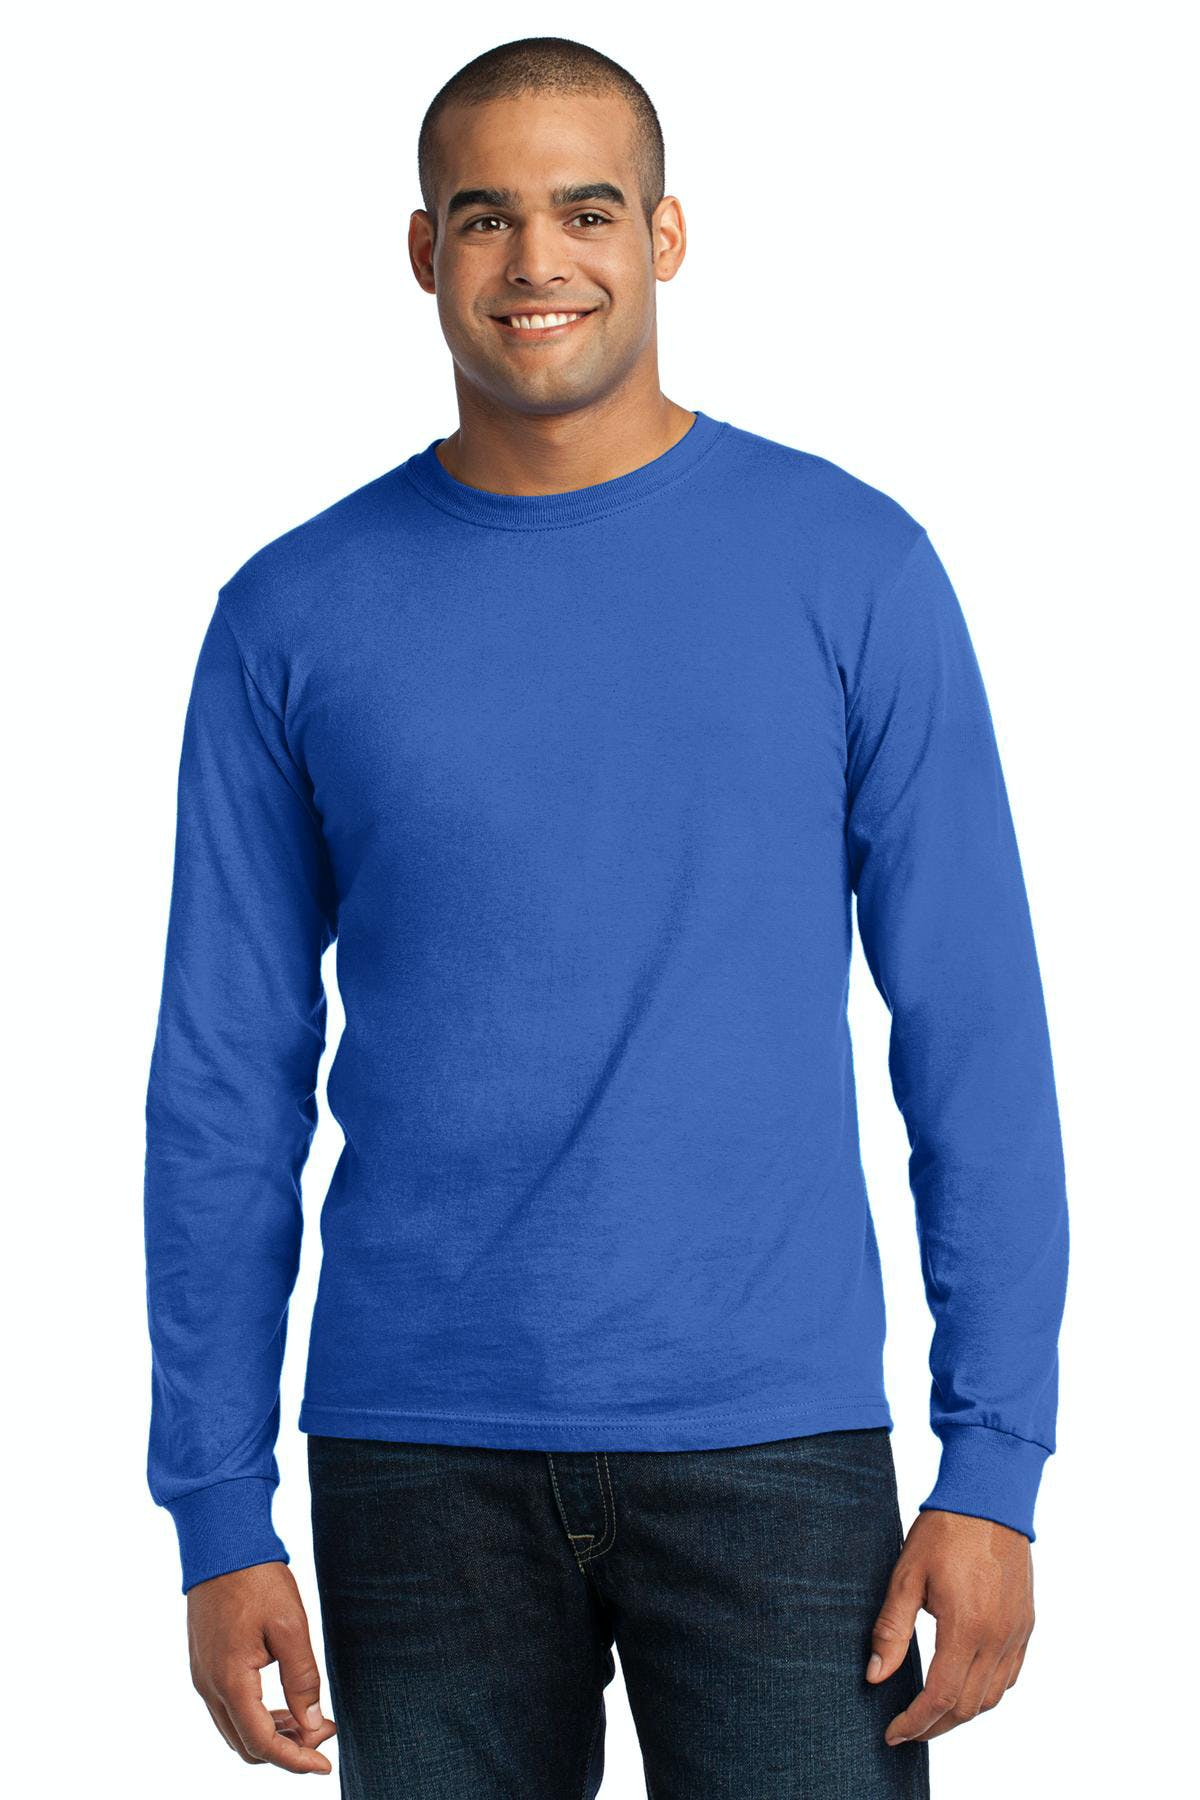 Port & Company® - Long Sleeve All-American Tee - sold by PRINT CITY GRAPHICS, INC